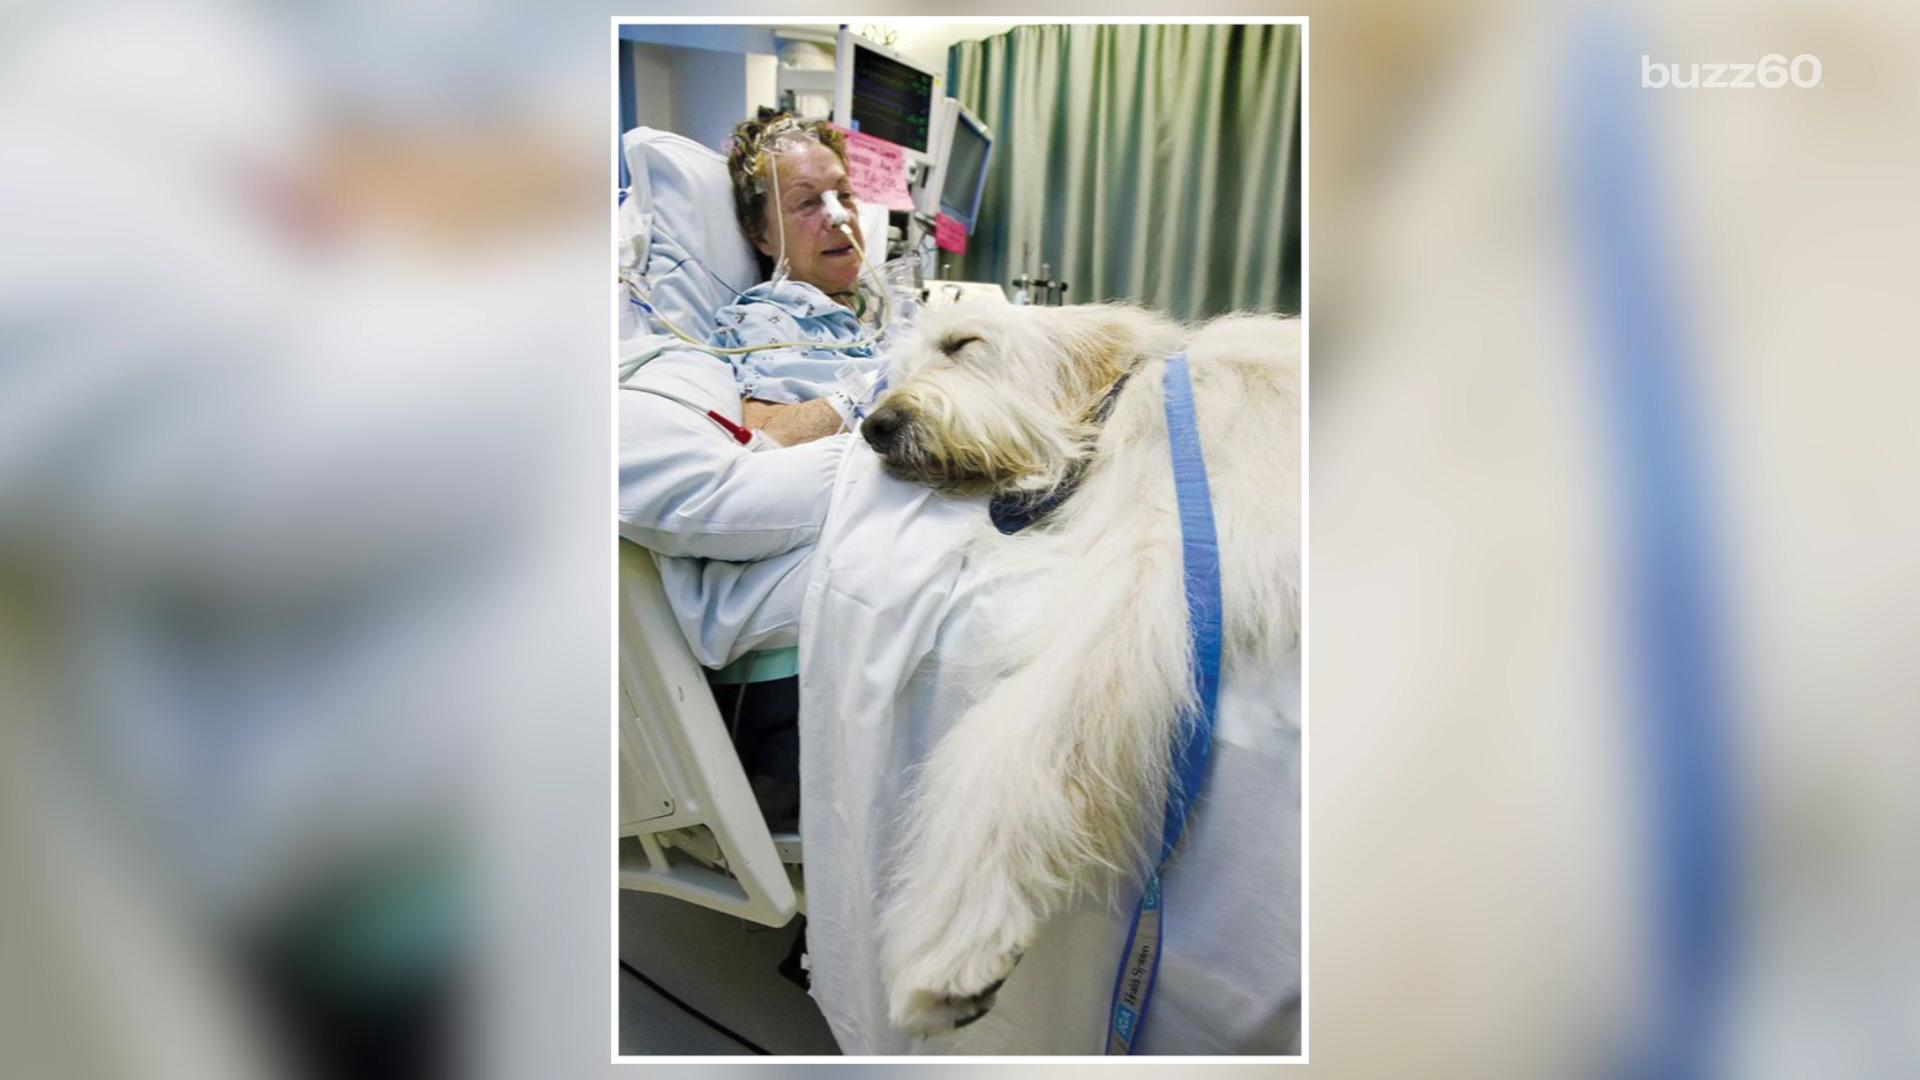 This Wonderful Hospital Allows Pets To Visit Their Poorly Owners